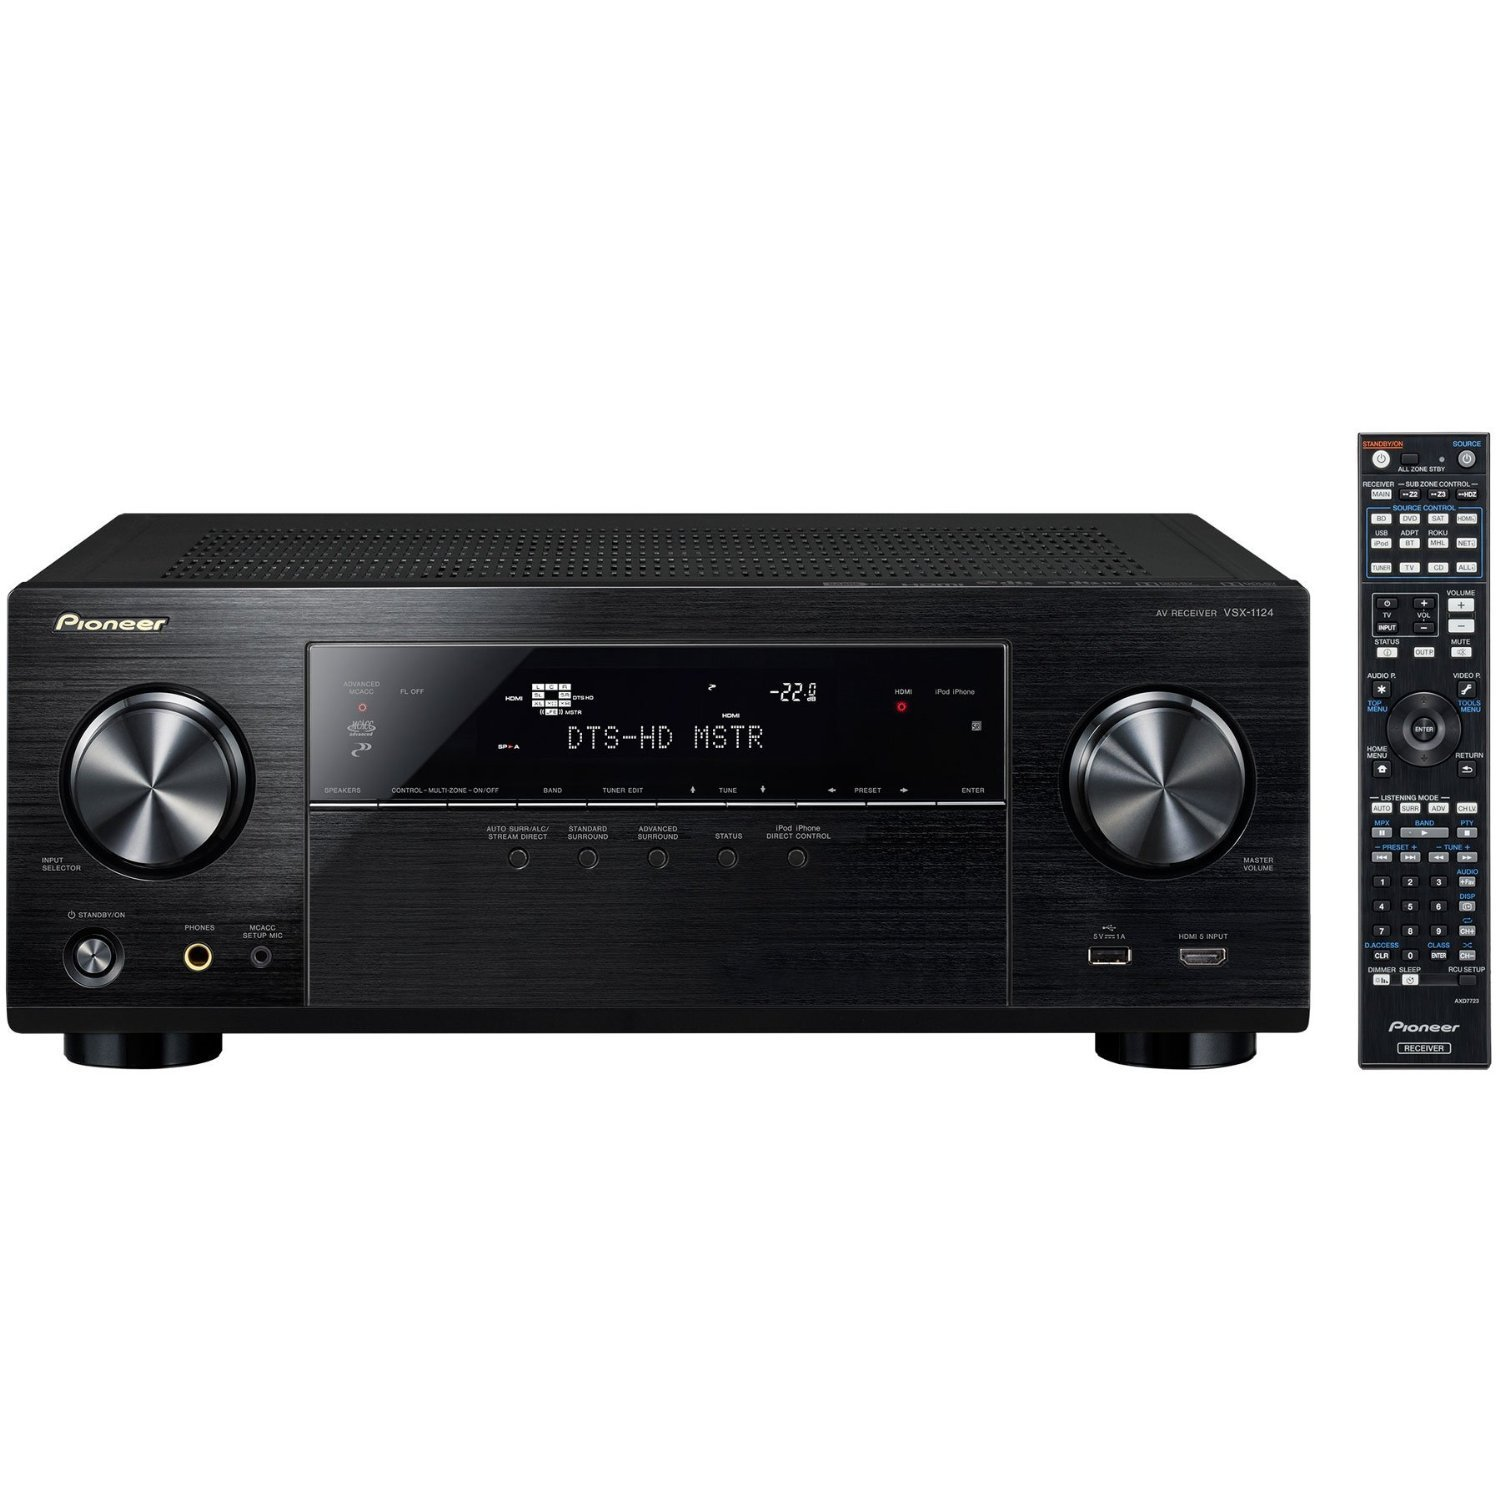 Pioneer VSX-1124 7.2-Channel Network A/V Receiver